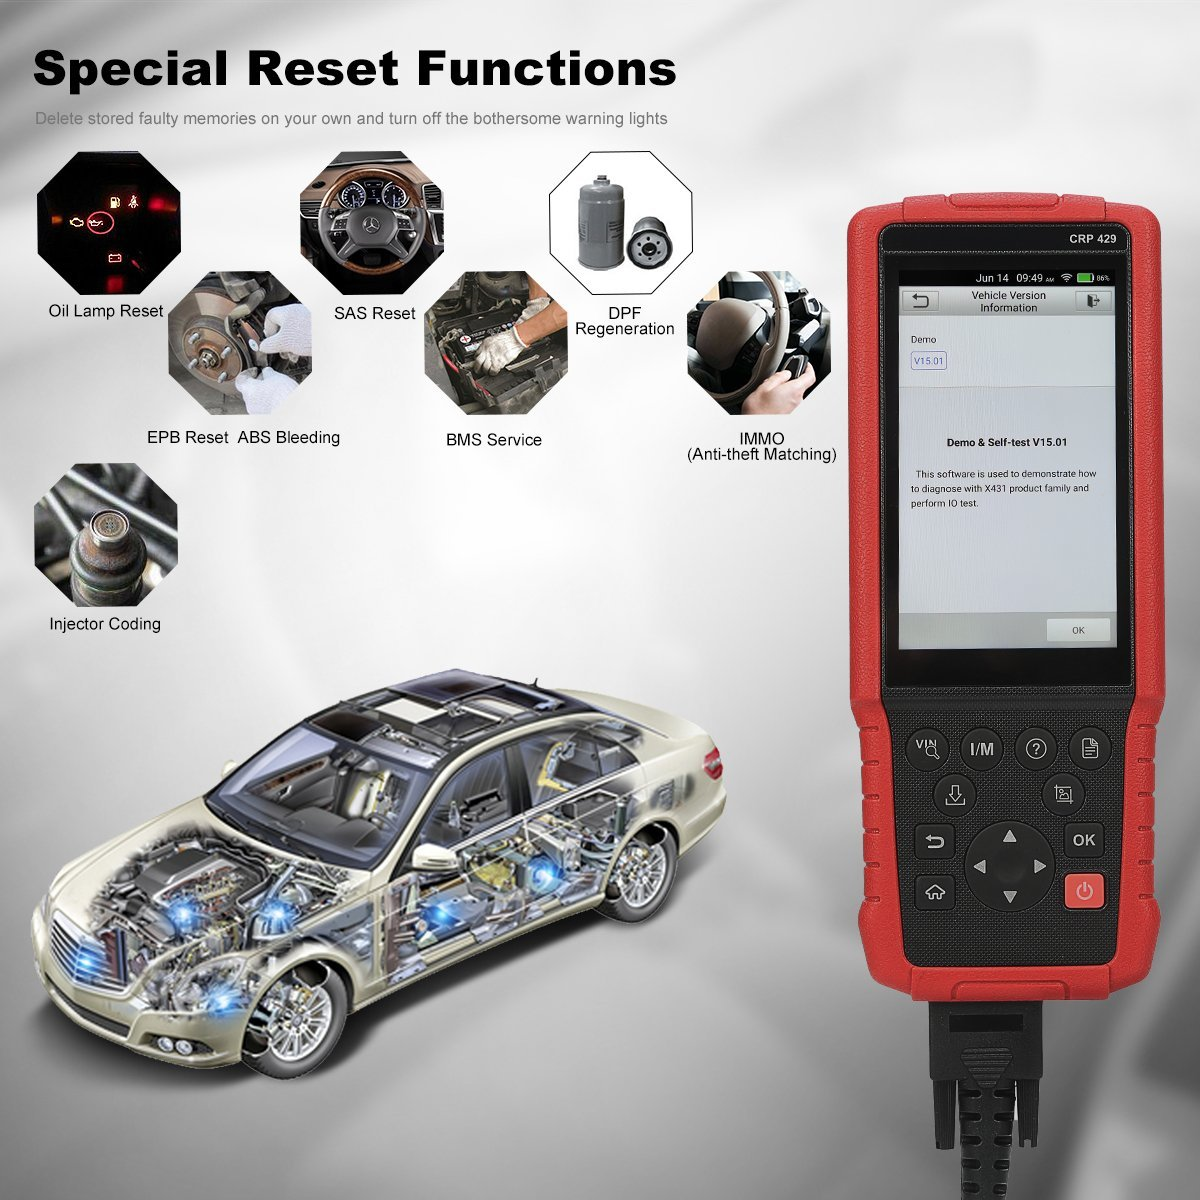 LAUNCH CRP429 OBD2 Scanner Diagnostic Scan Tool Srs ABS Full System Code  Reader Reset Functions of Oil Reset, Epb, BMS, Sas, DPF, ABS Bleeding,